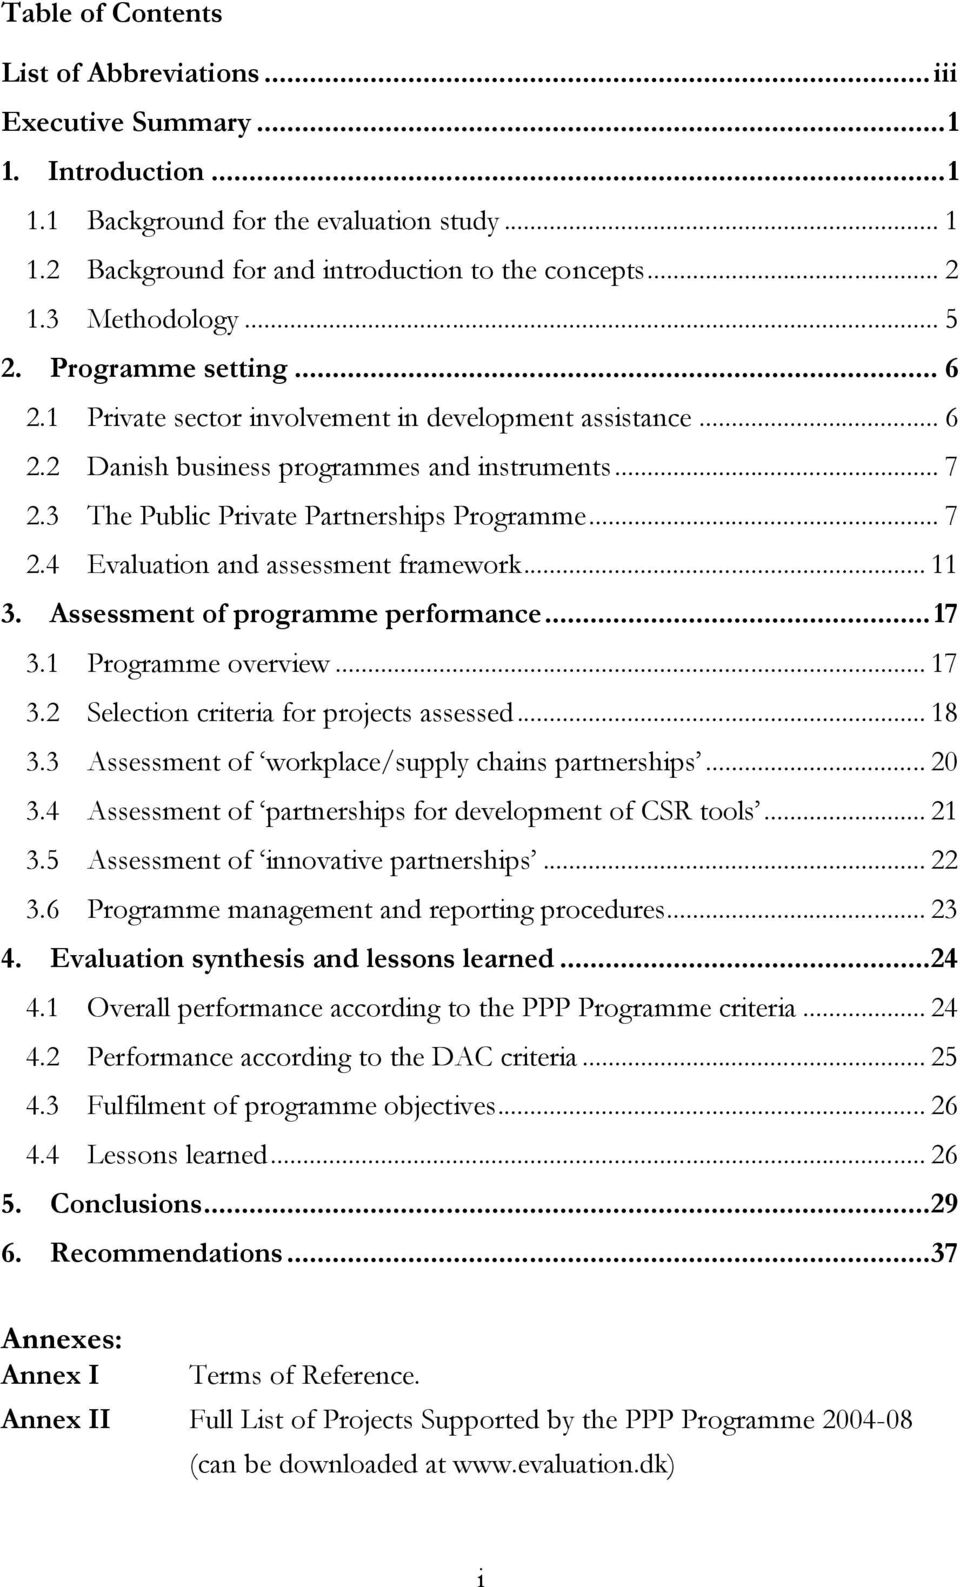 3 The Public Private Partnerships Programme... 7 2.4 Evaluation and assessment framework... 11 3. Assessment of programme performance... 17 3.1 Programme overview... 17 3.2 Selection criteria for projects assessed.